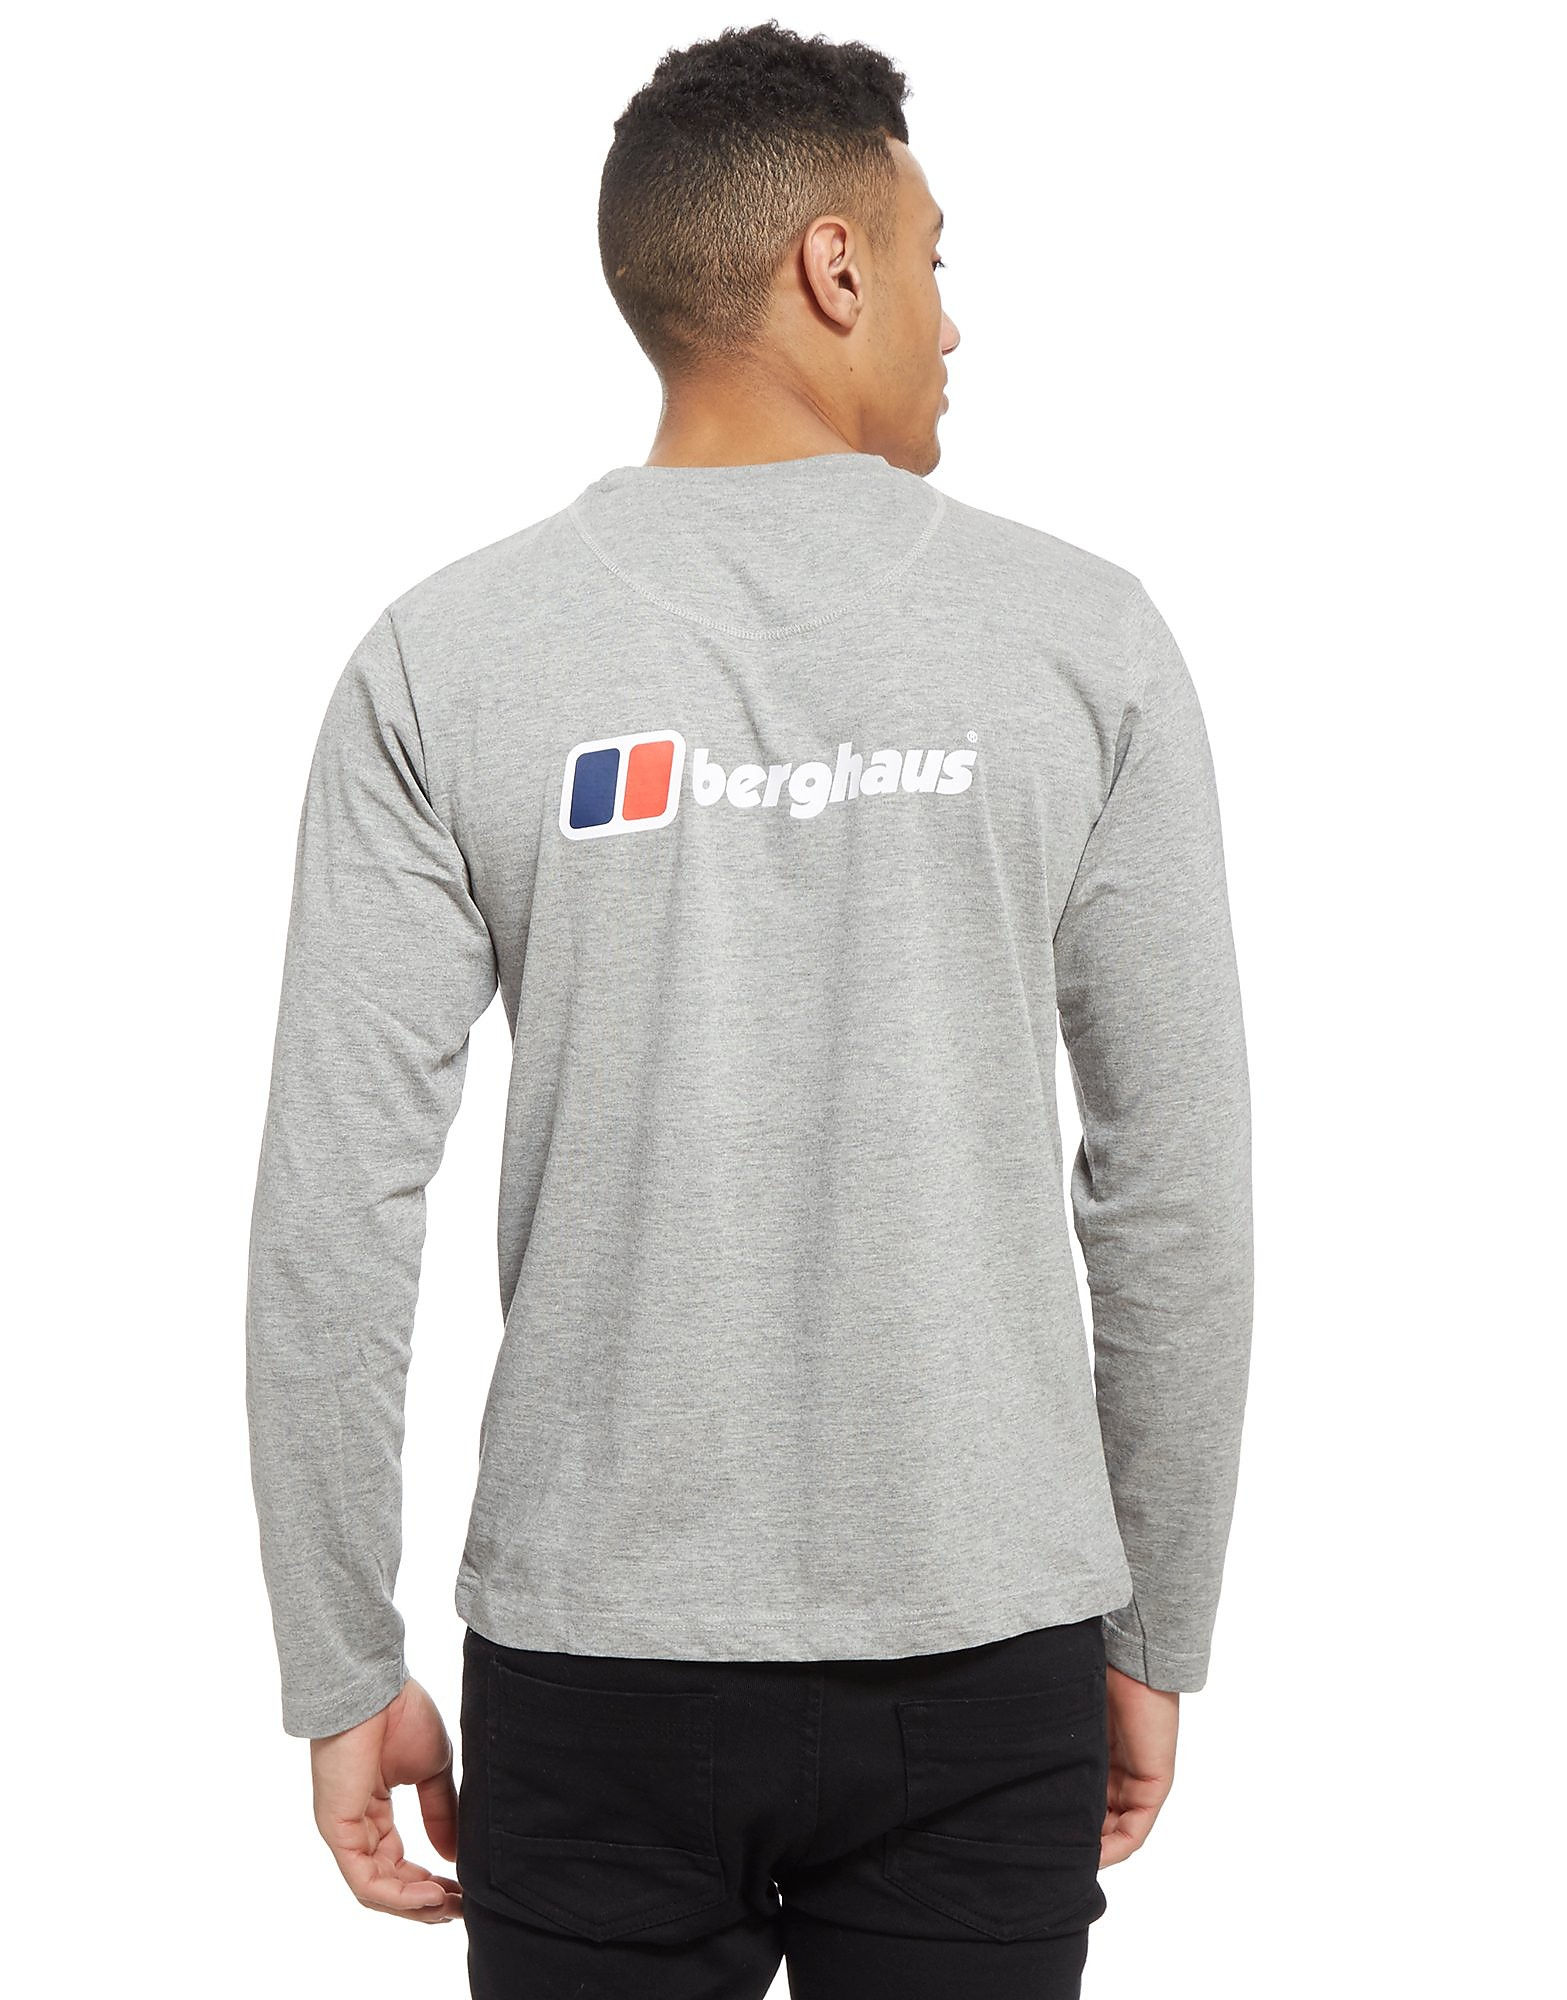 Berghaus Back Logo Long Sleeve T-Shirt